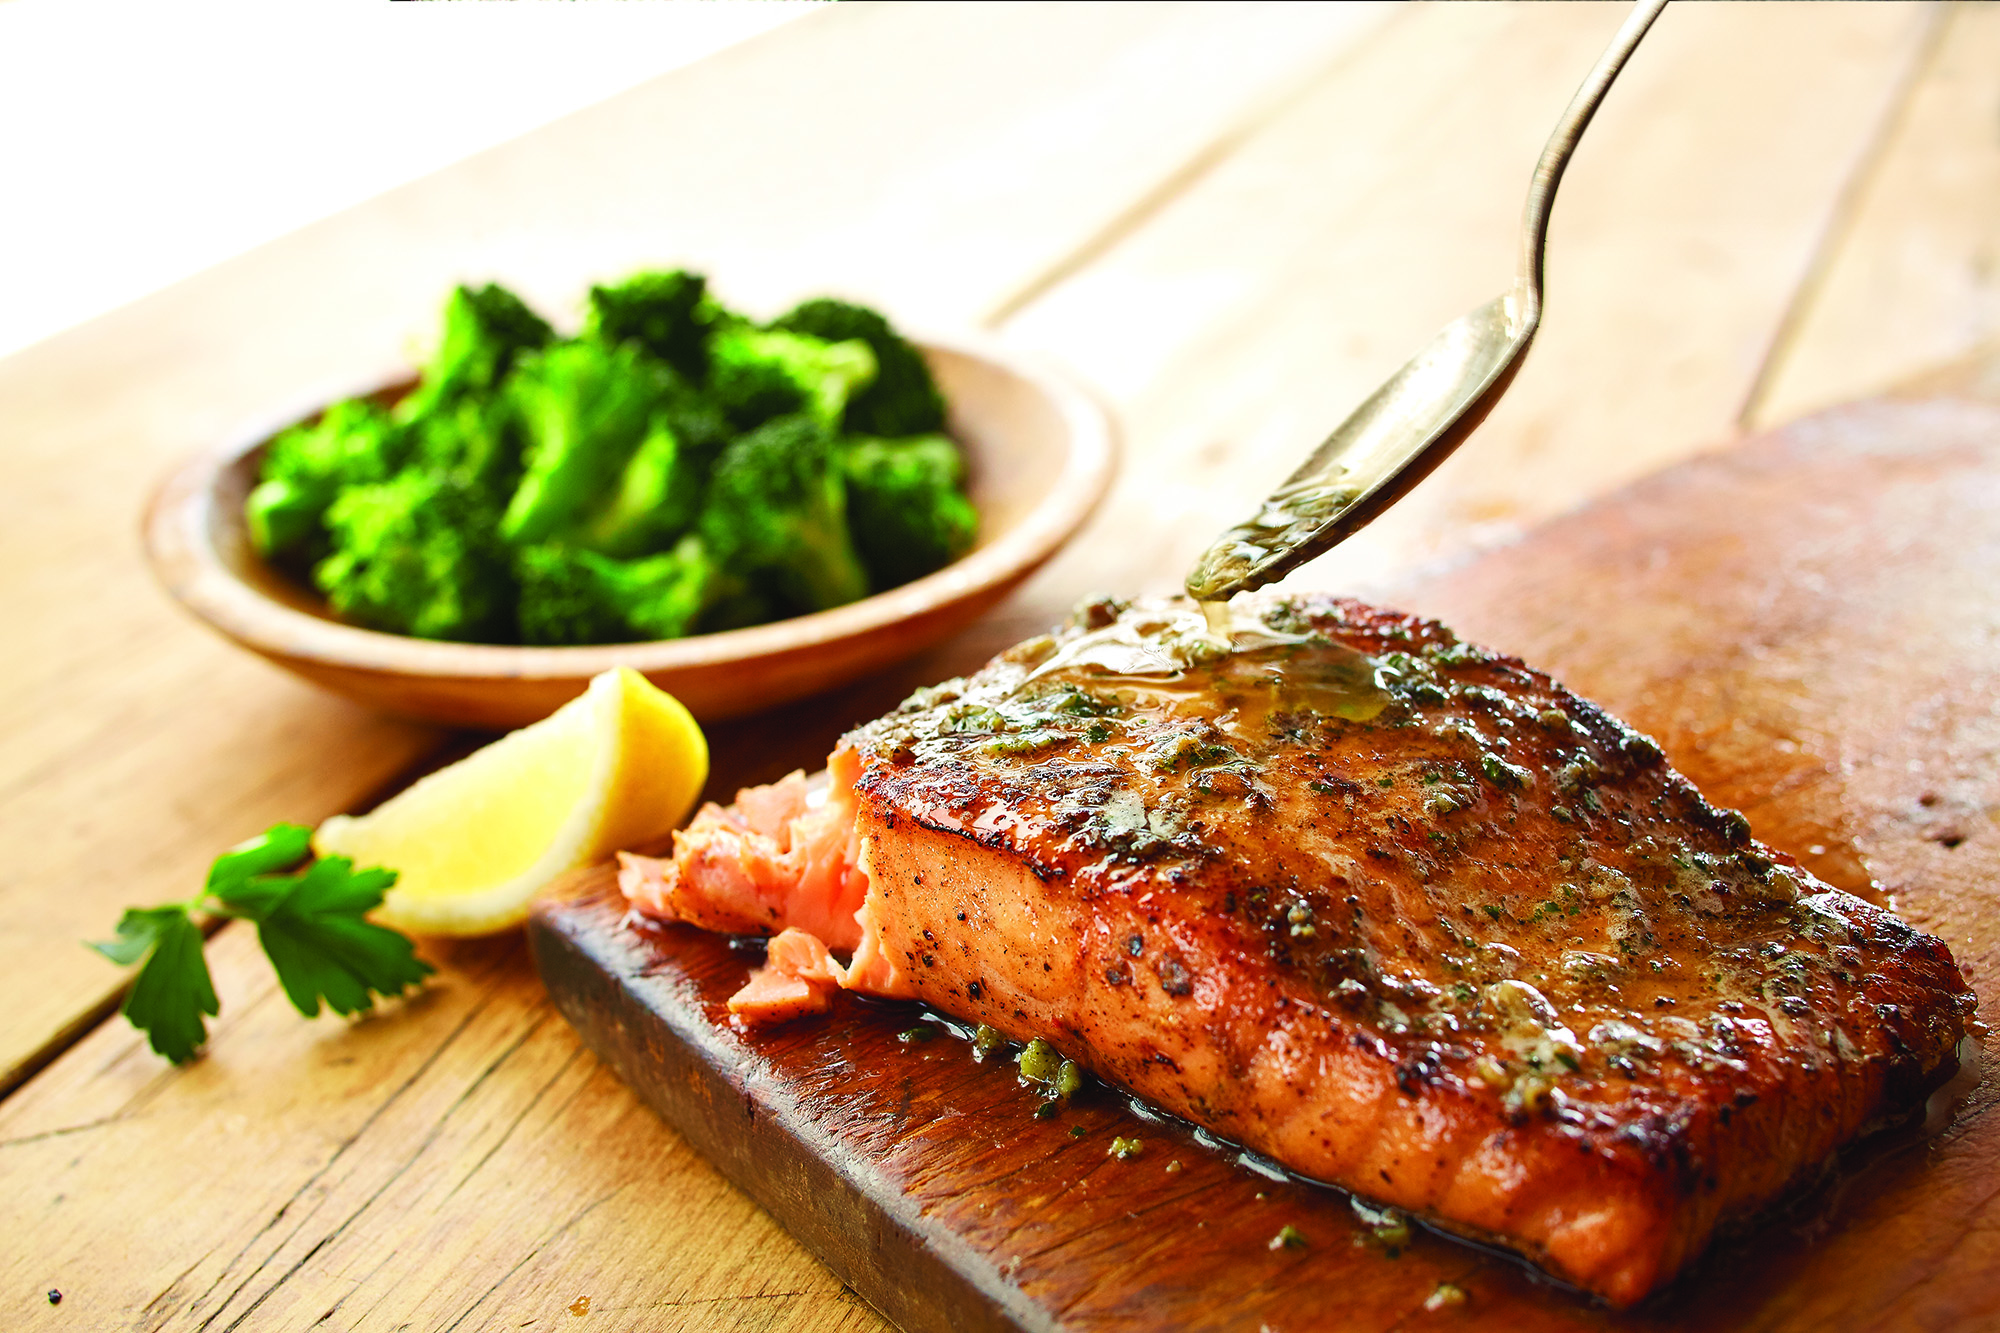 F:PHOTOReady RoomActionsInsert Request48485#courtesyOlive Garden Herb Grilled Salmon.jpg